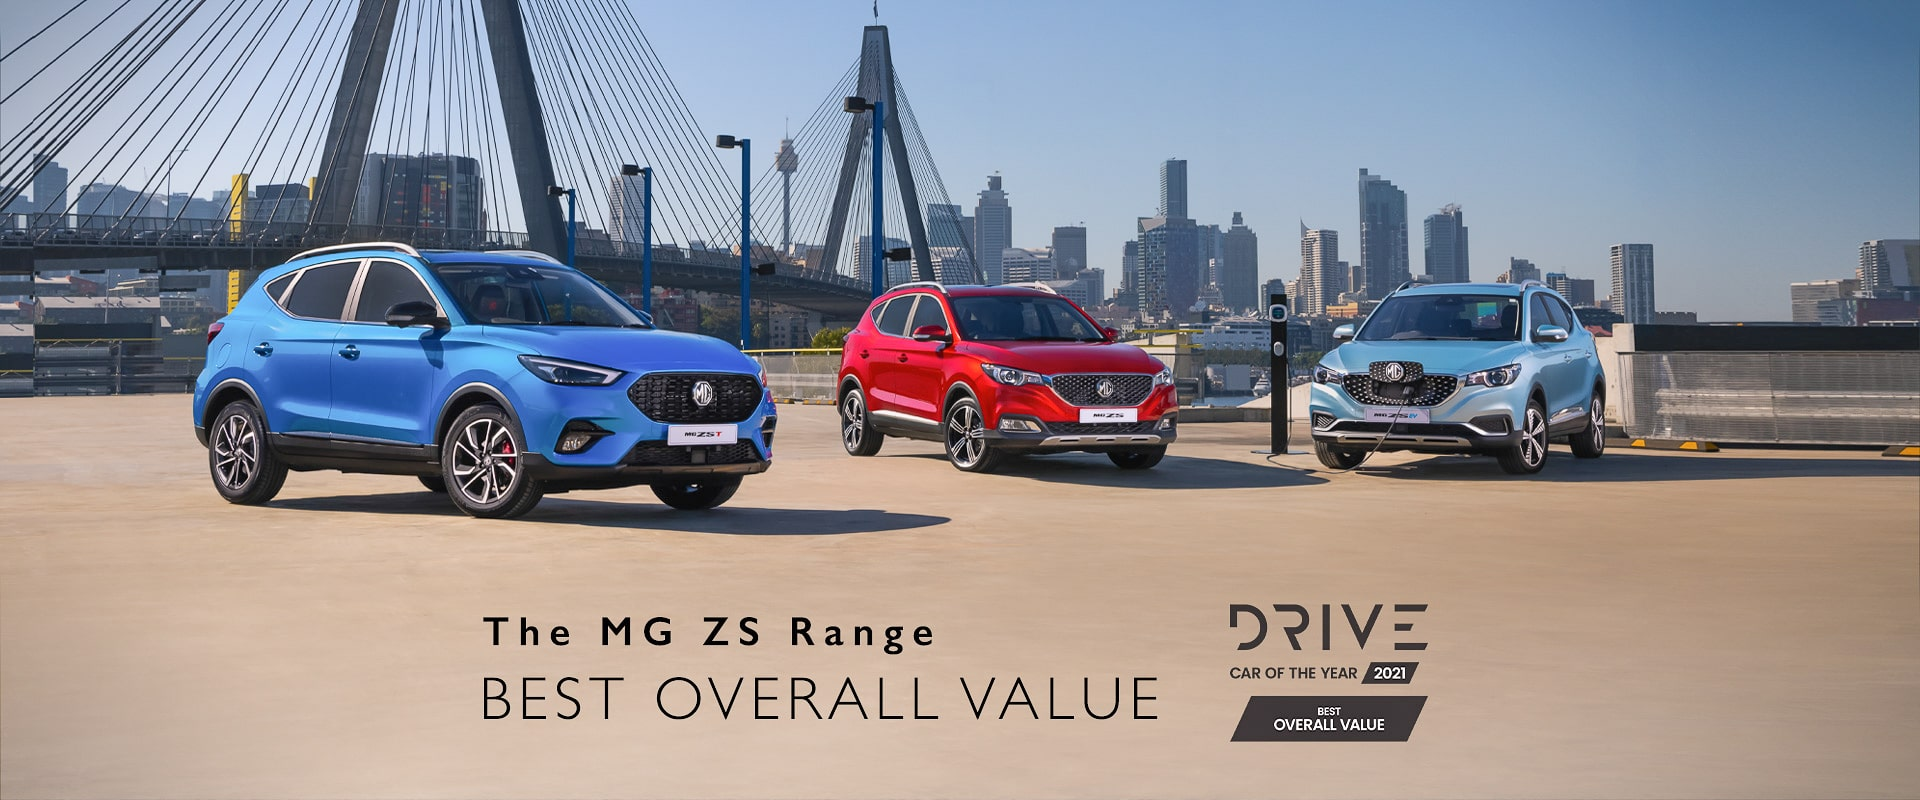 The MG ZS Range - Best Overall Value